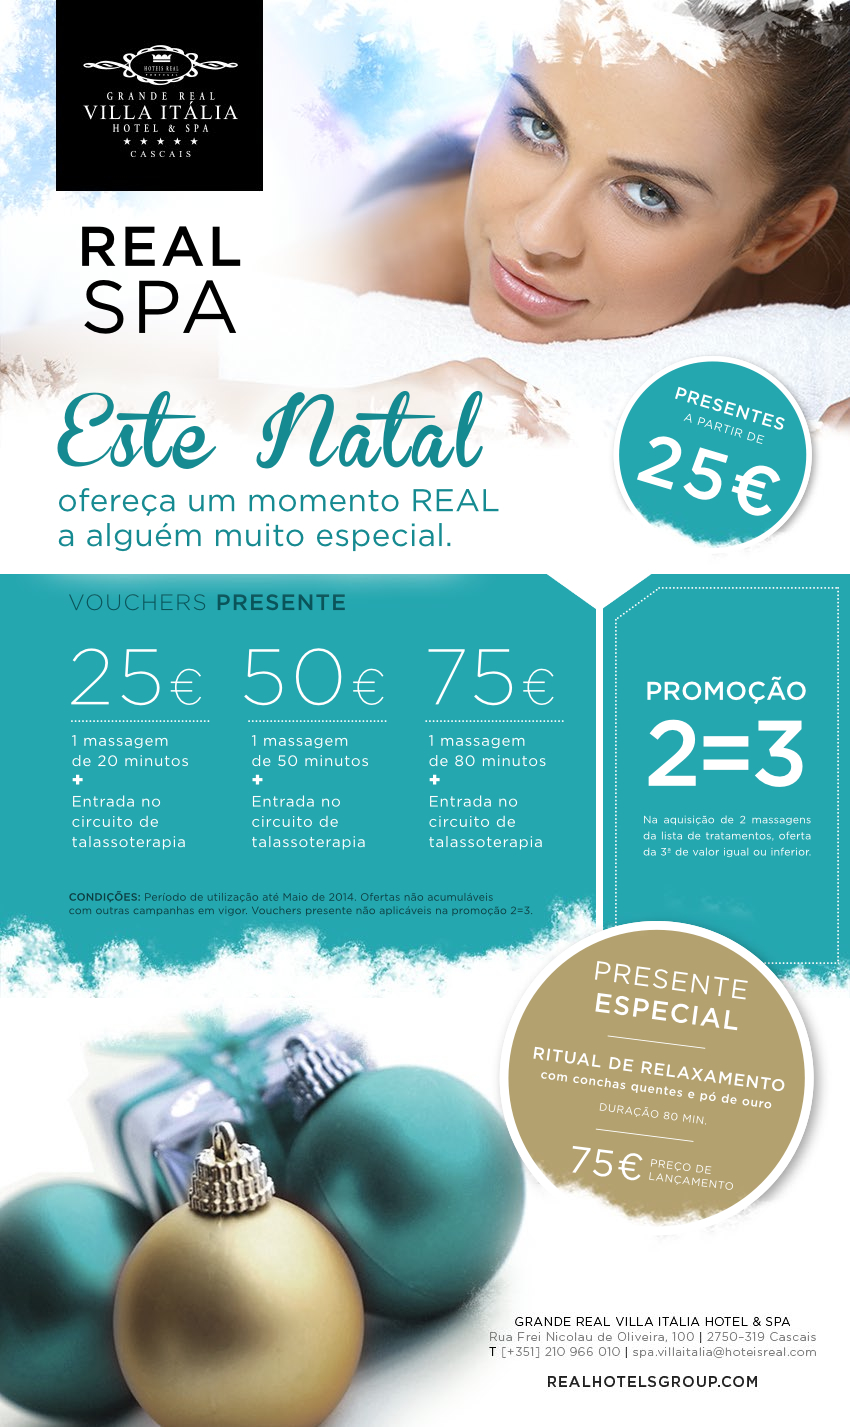 Natal no Real Spa